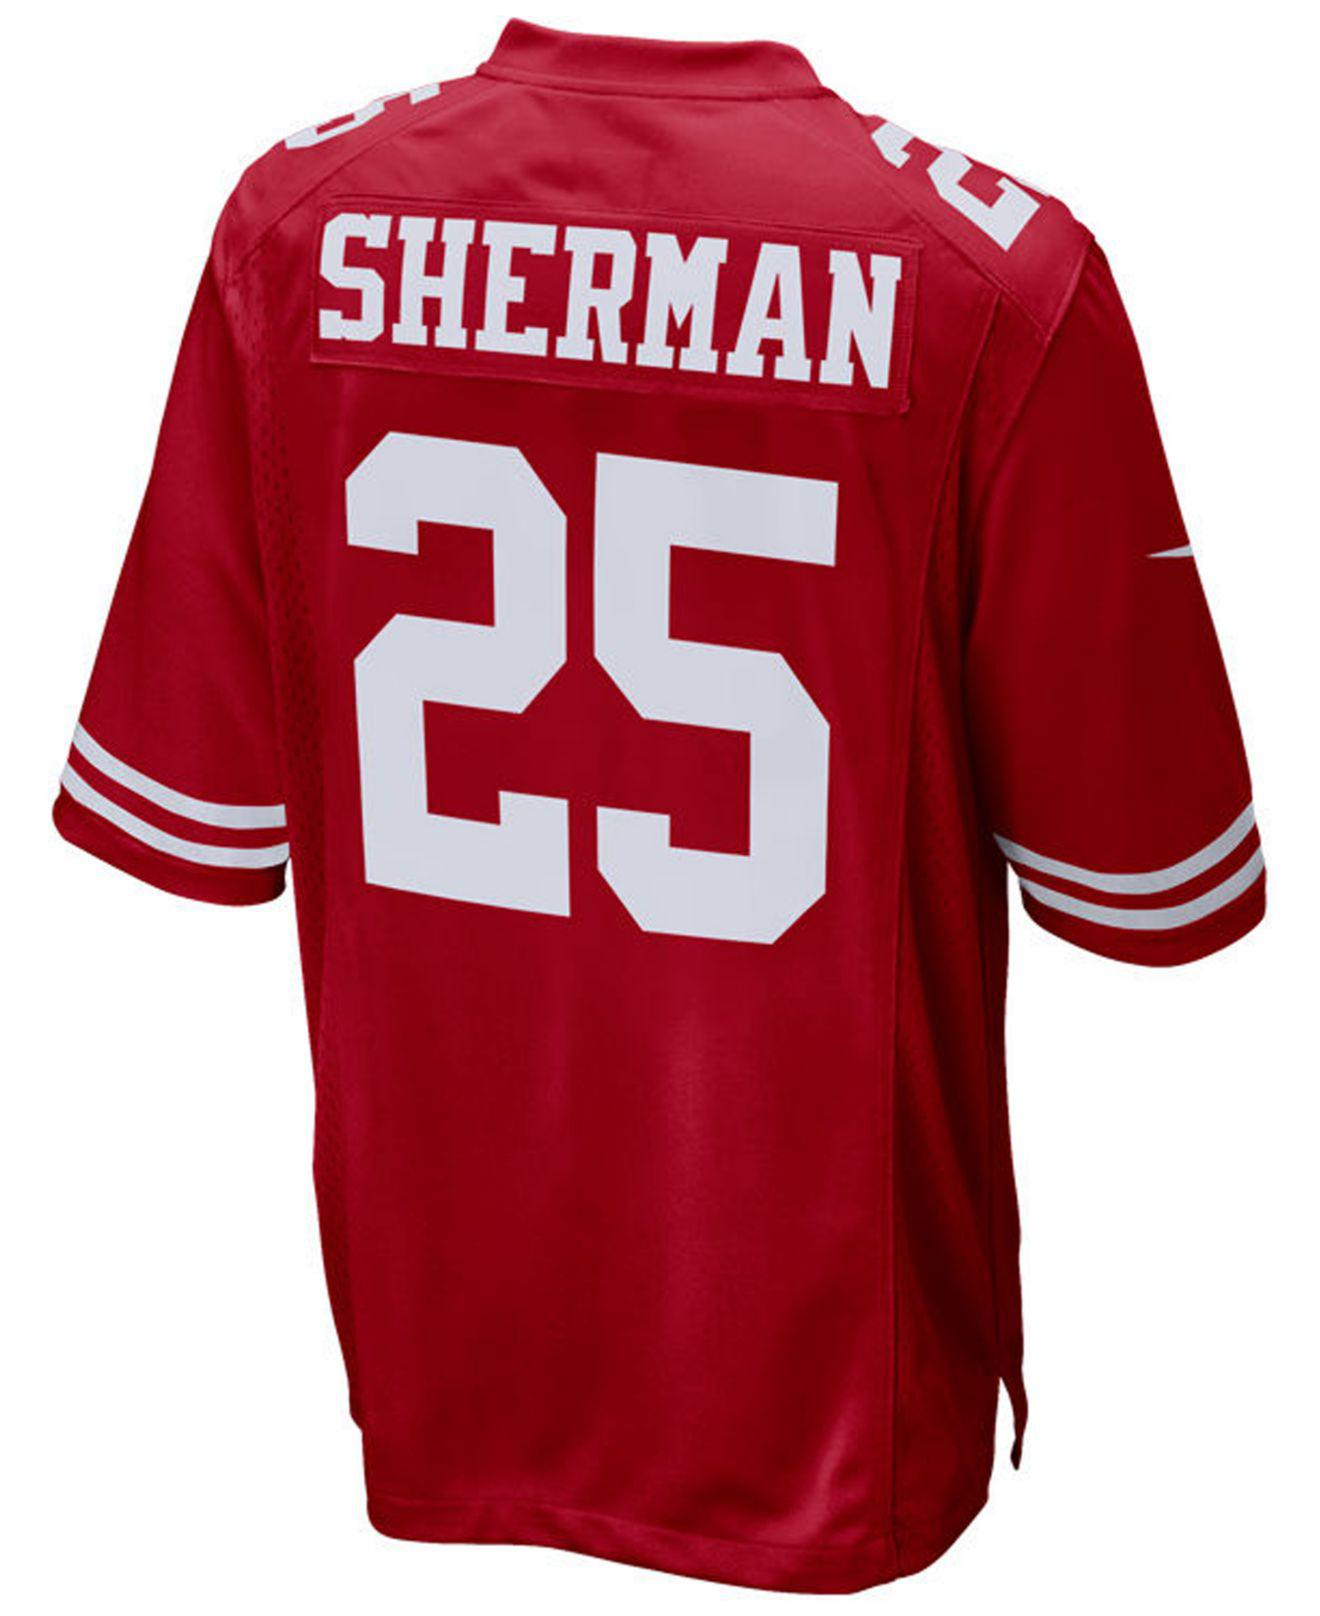 1a38f339eee Lyst - Nike Richard Sherman San Francisco 49ers Game Jersey in Red ...